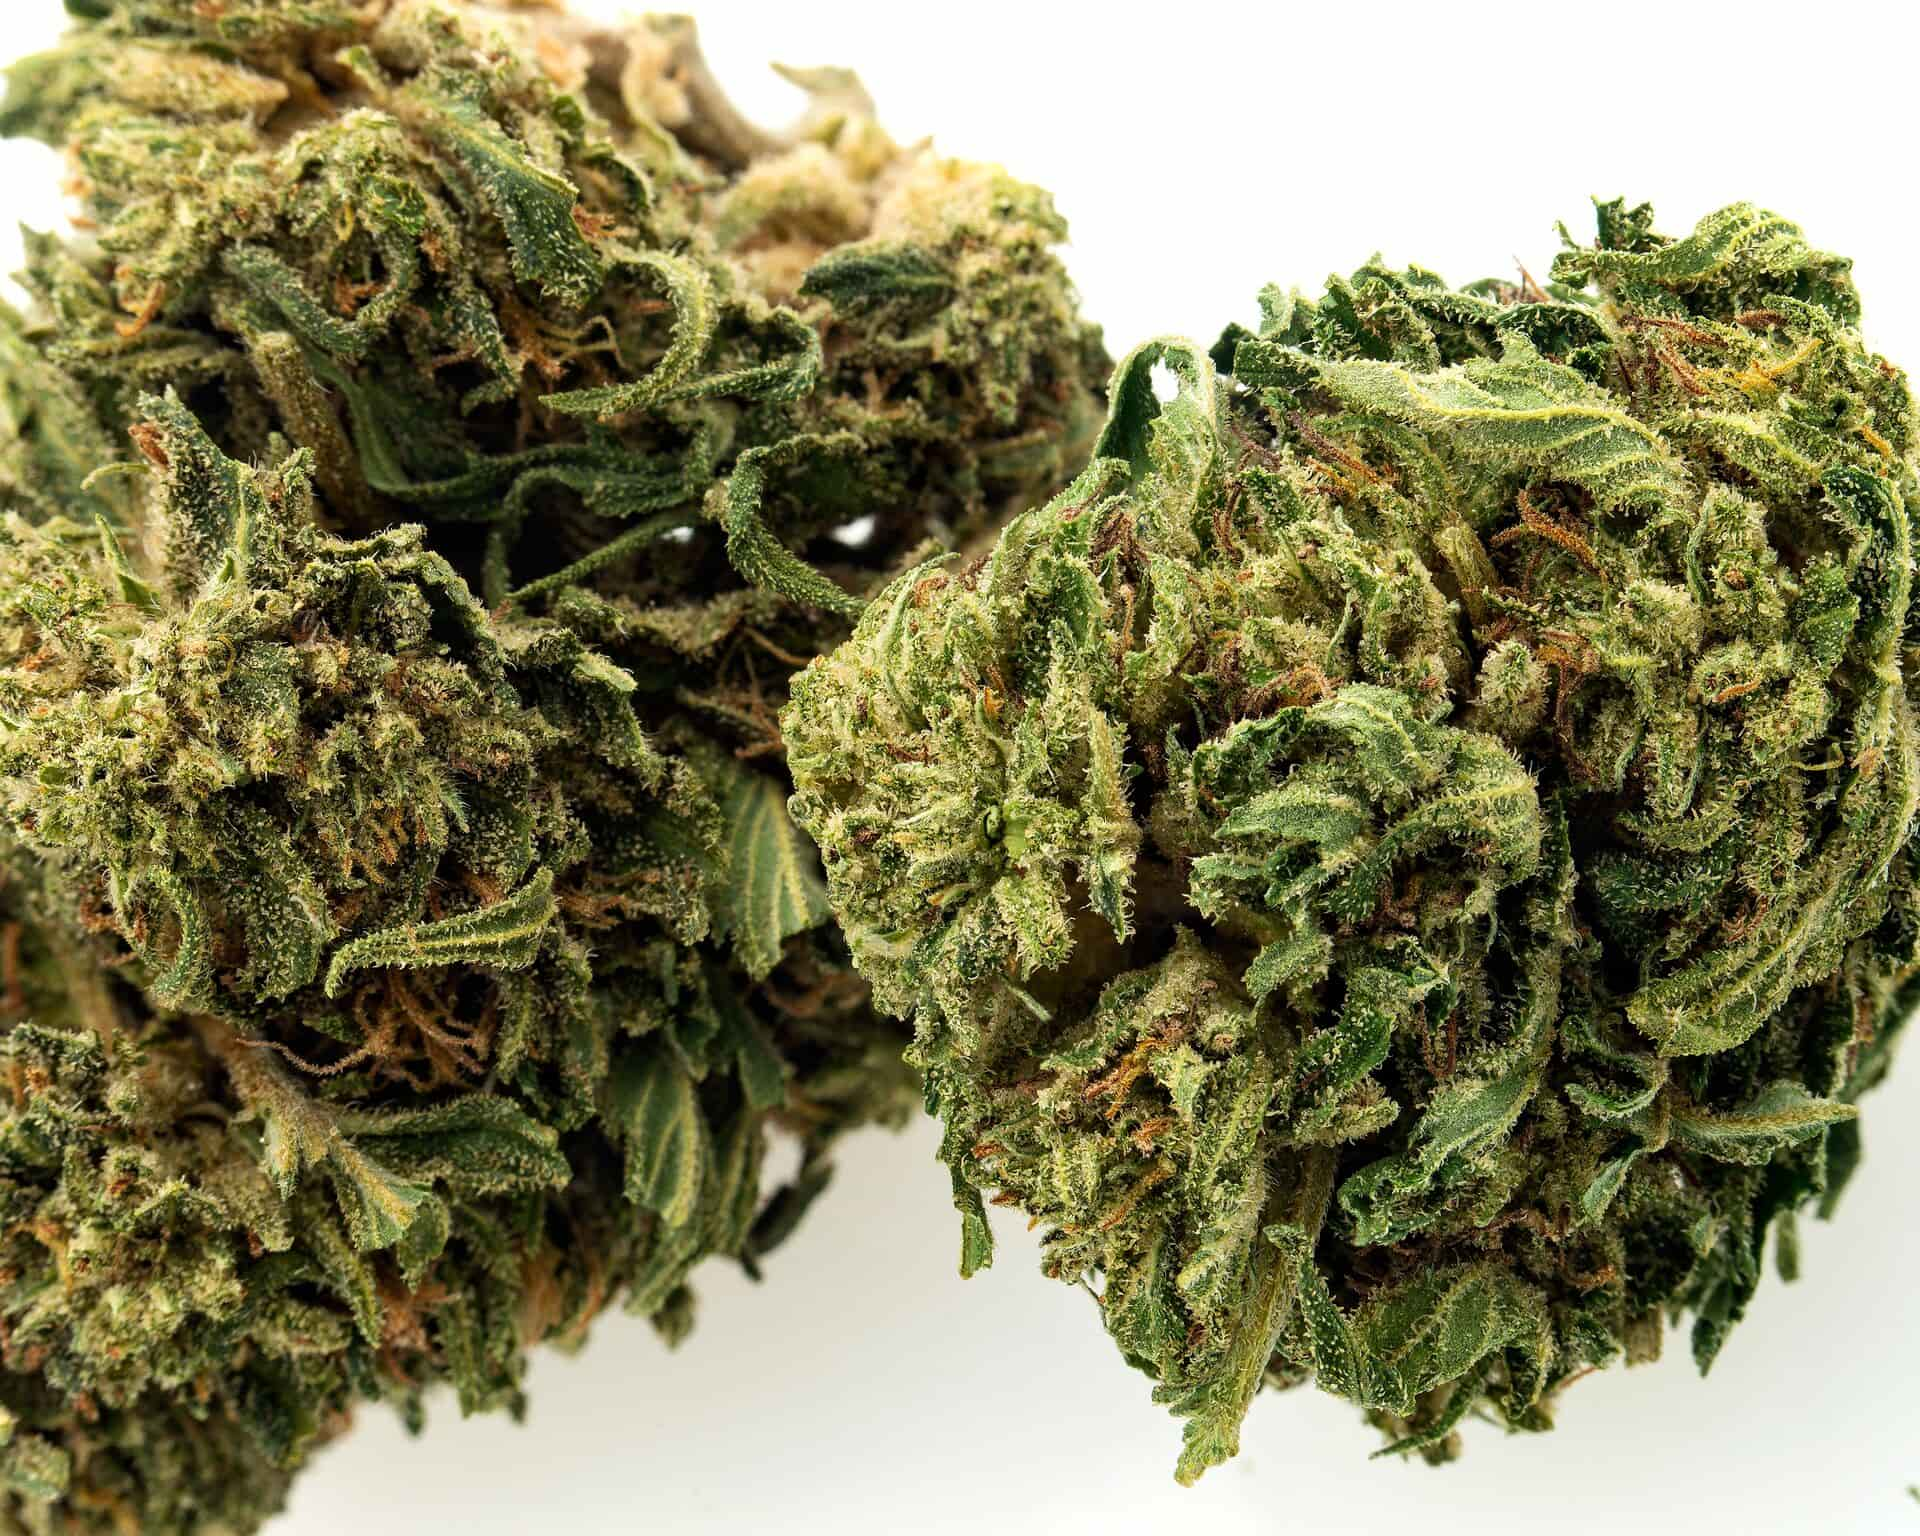 bubba kush cbd hemp flower for sale online